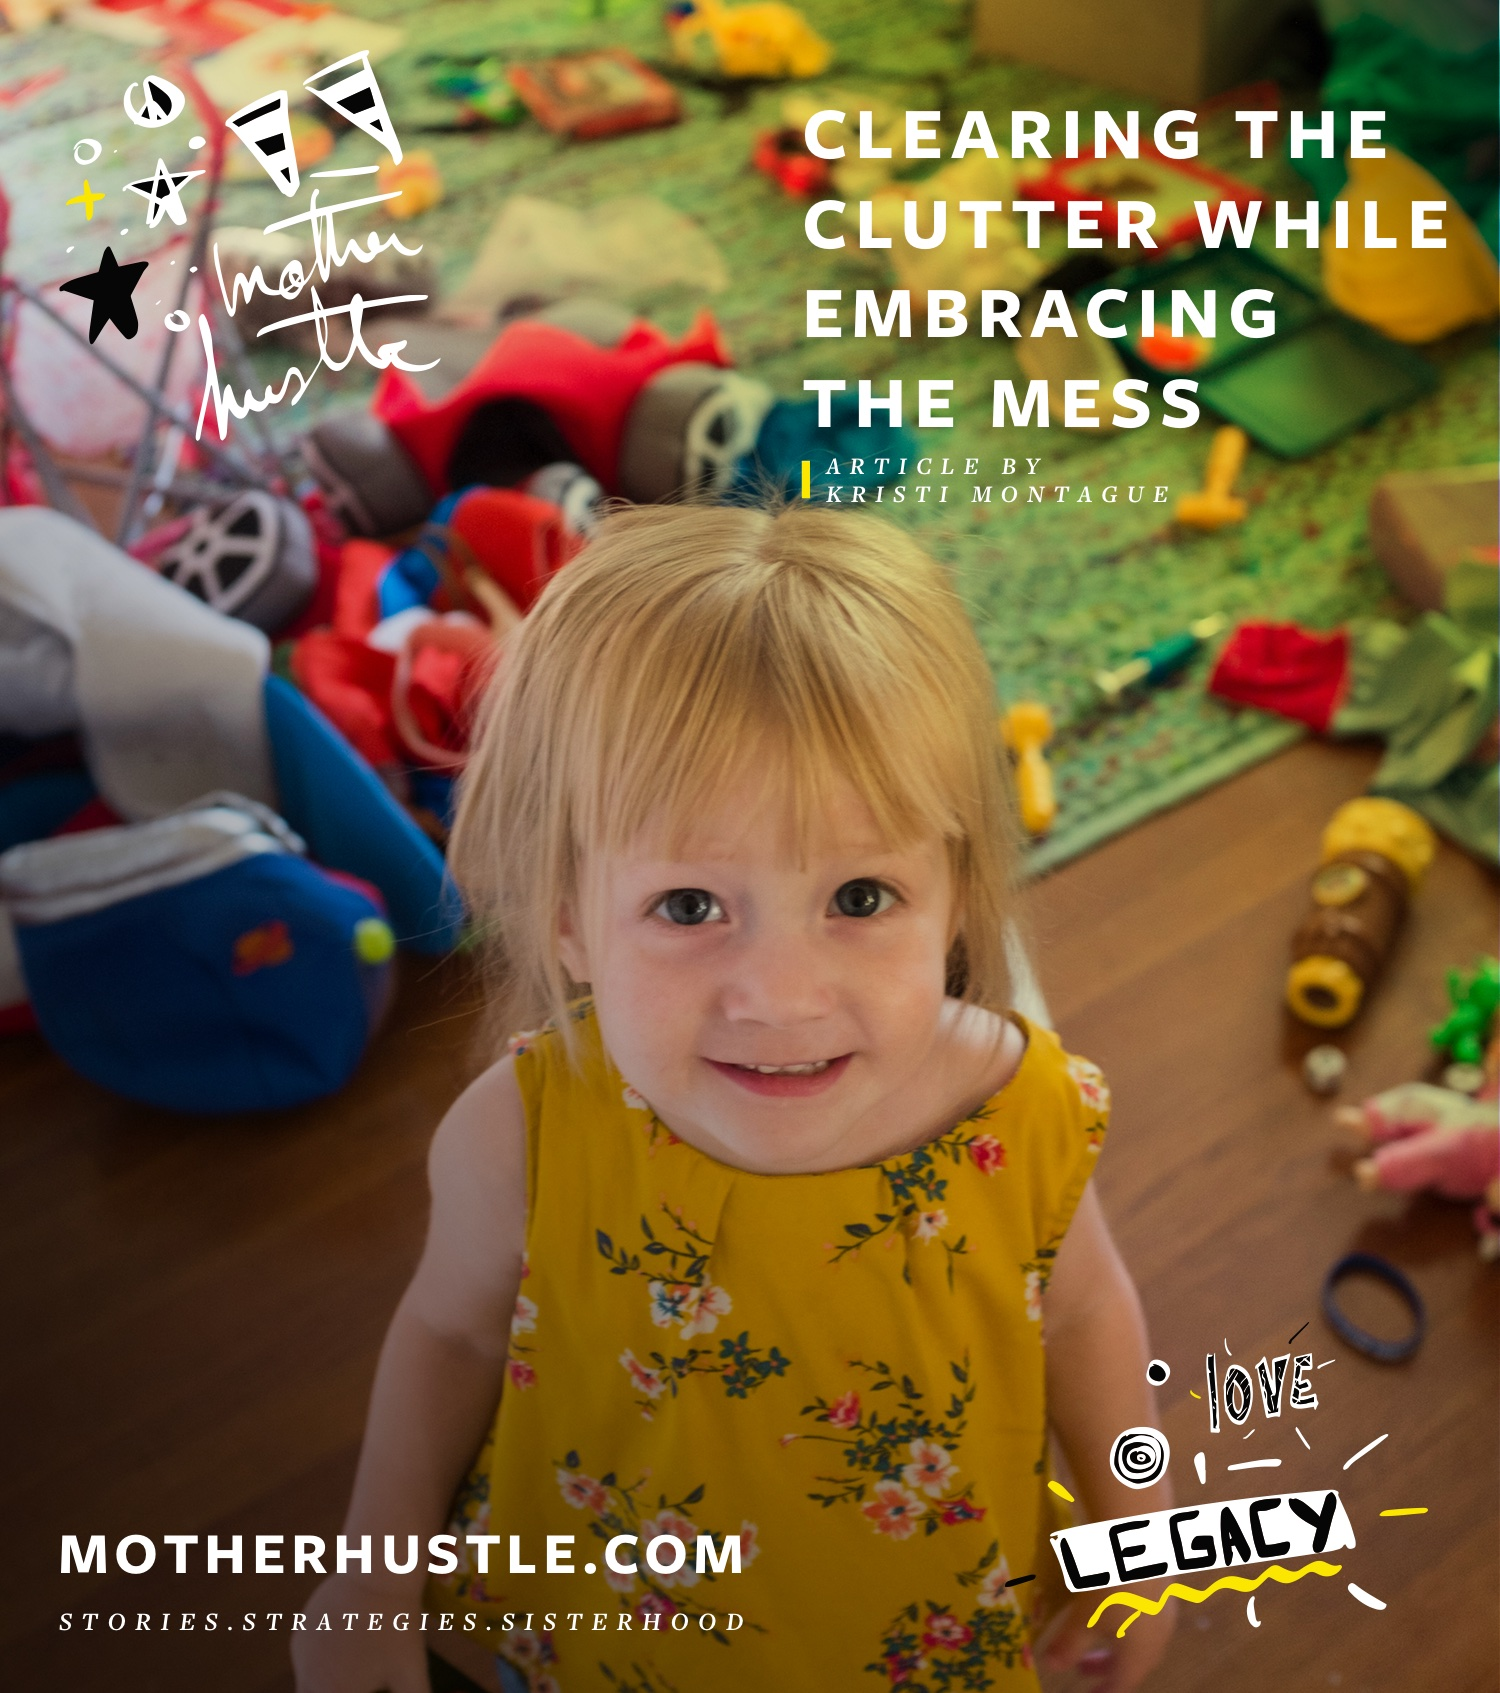 Clearing the Clutter While Embracing The Mess - Kristi Montague MotherHustle